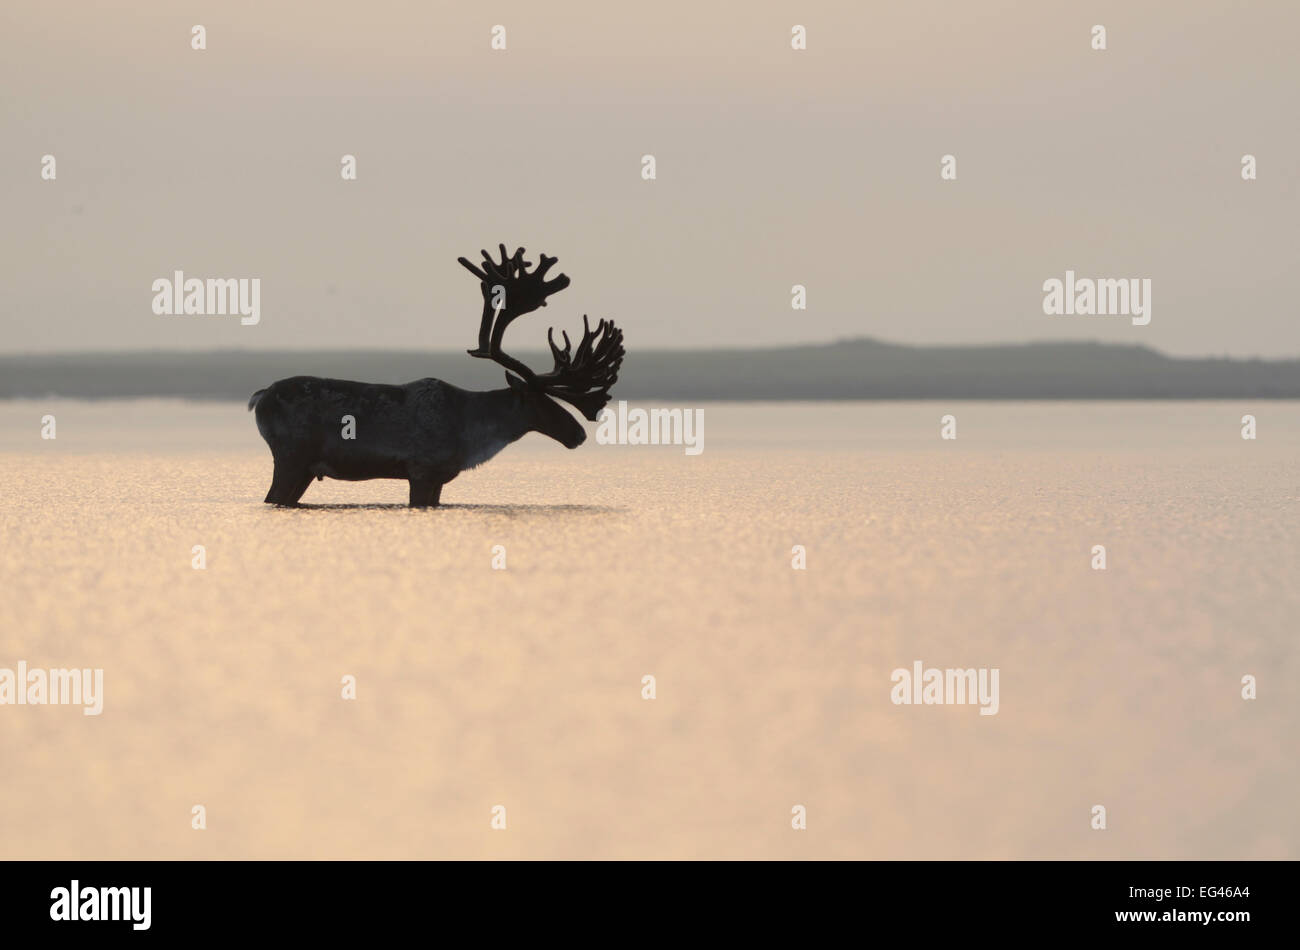 Large male Reindeer (Rangifer tarandus) standing in shallow waters the Kronotsky lagoon away biting insects. Kronotsky - Stock Image